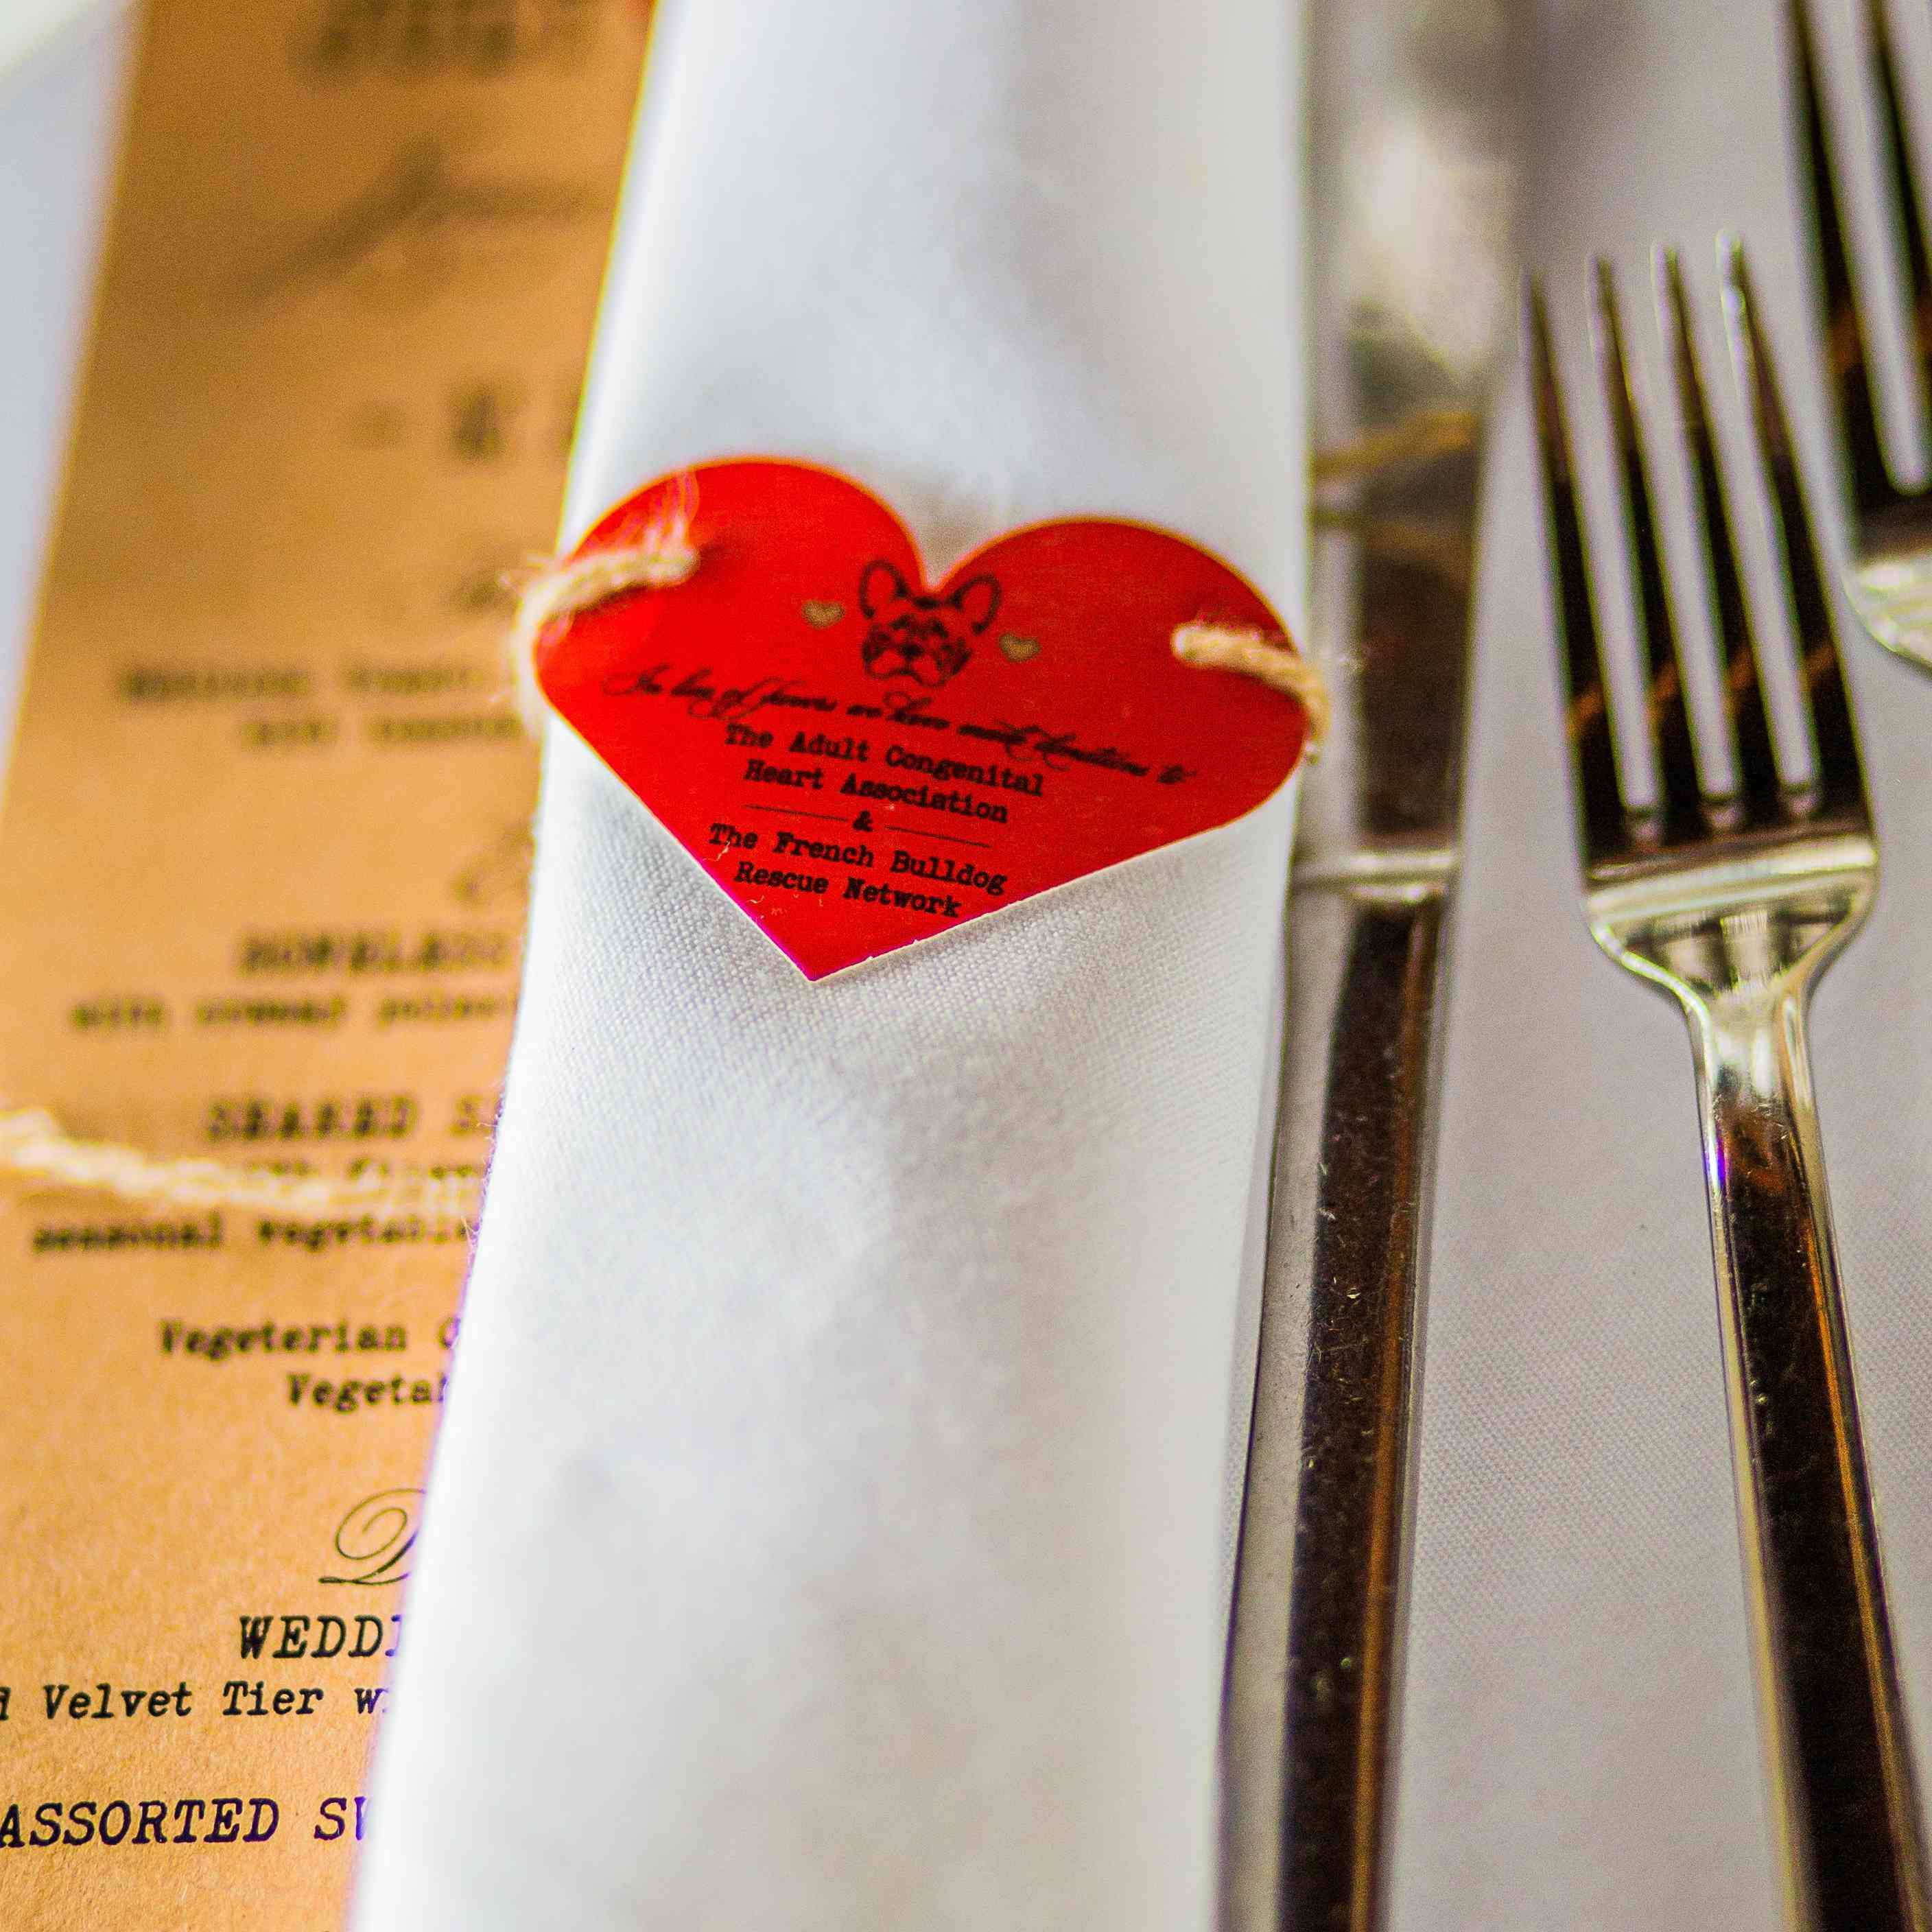 Charity information on a heart-shaped napkin holder